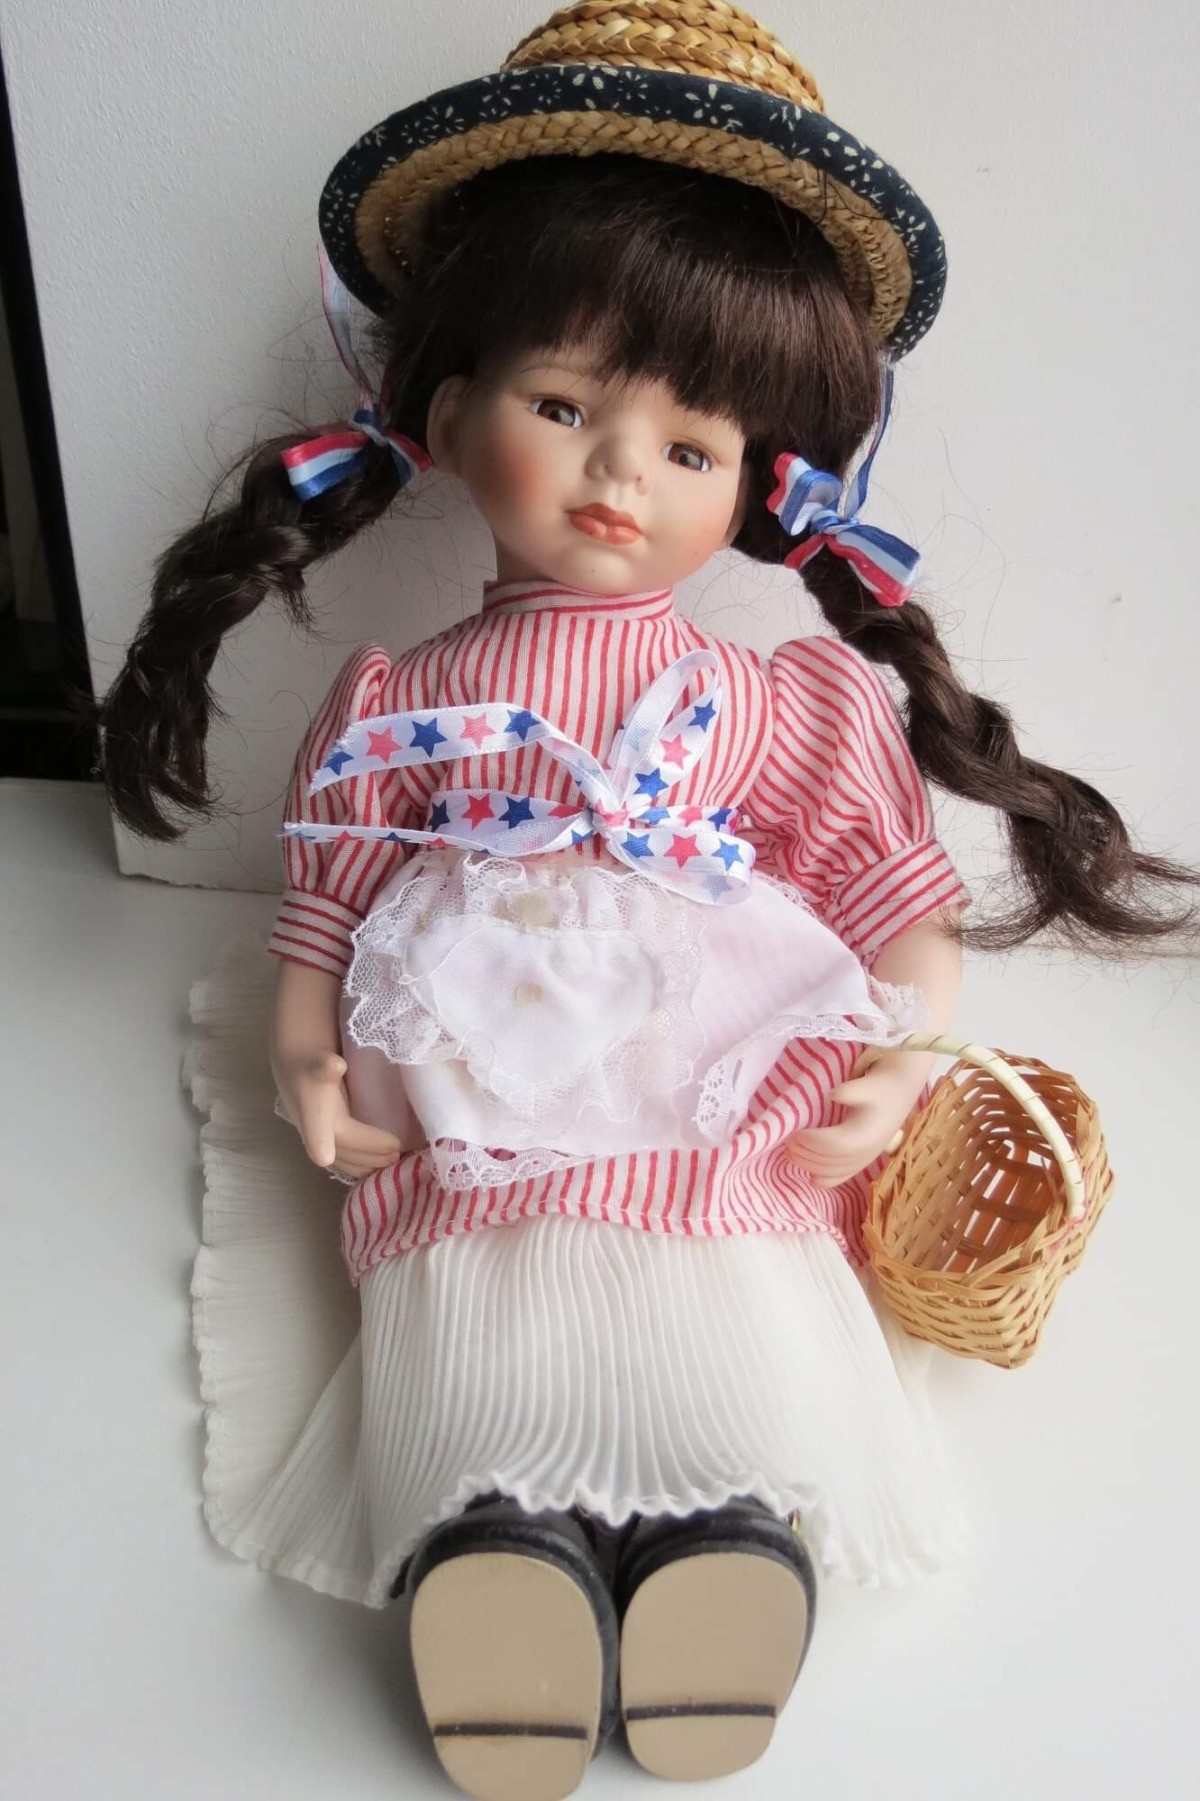 Identifying a Porcelain Doll | ThriftyFun